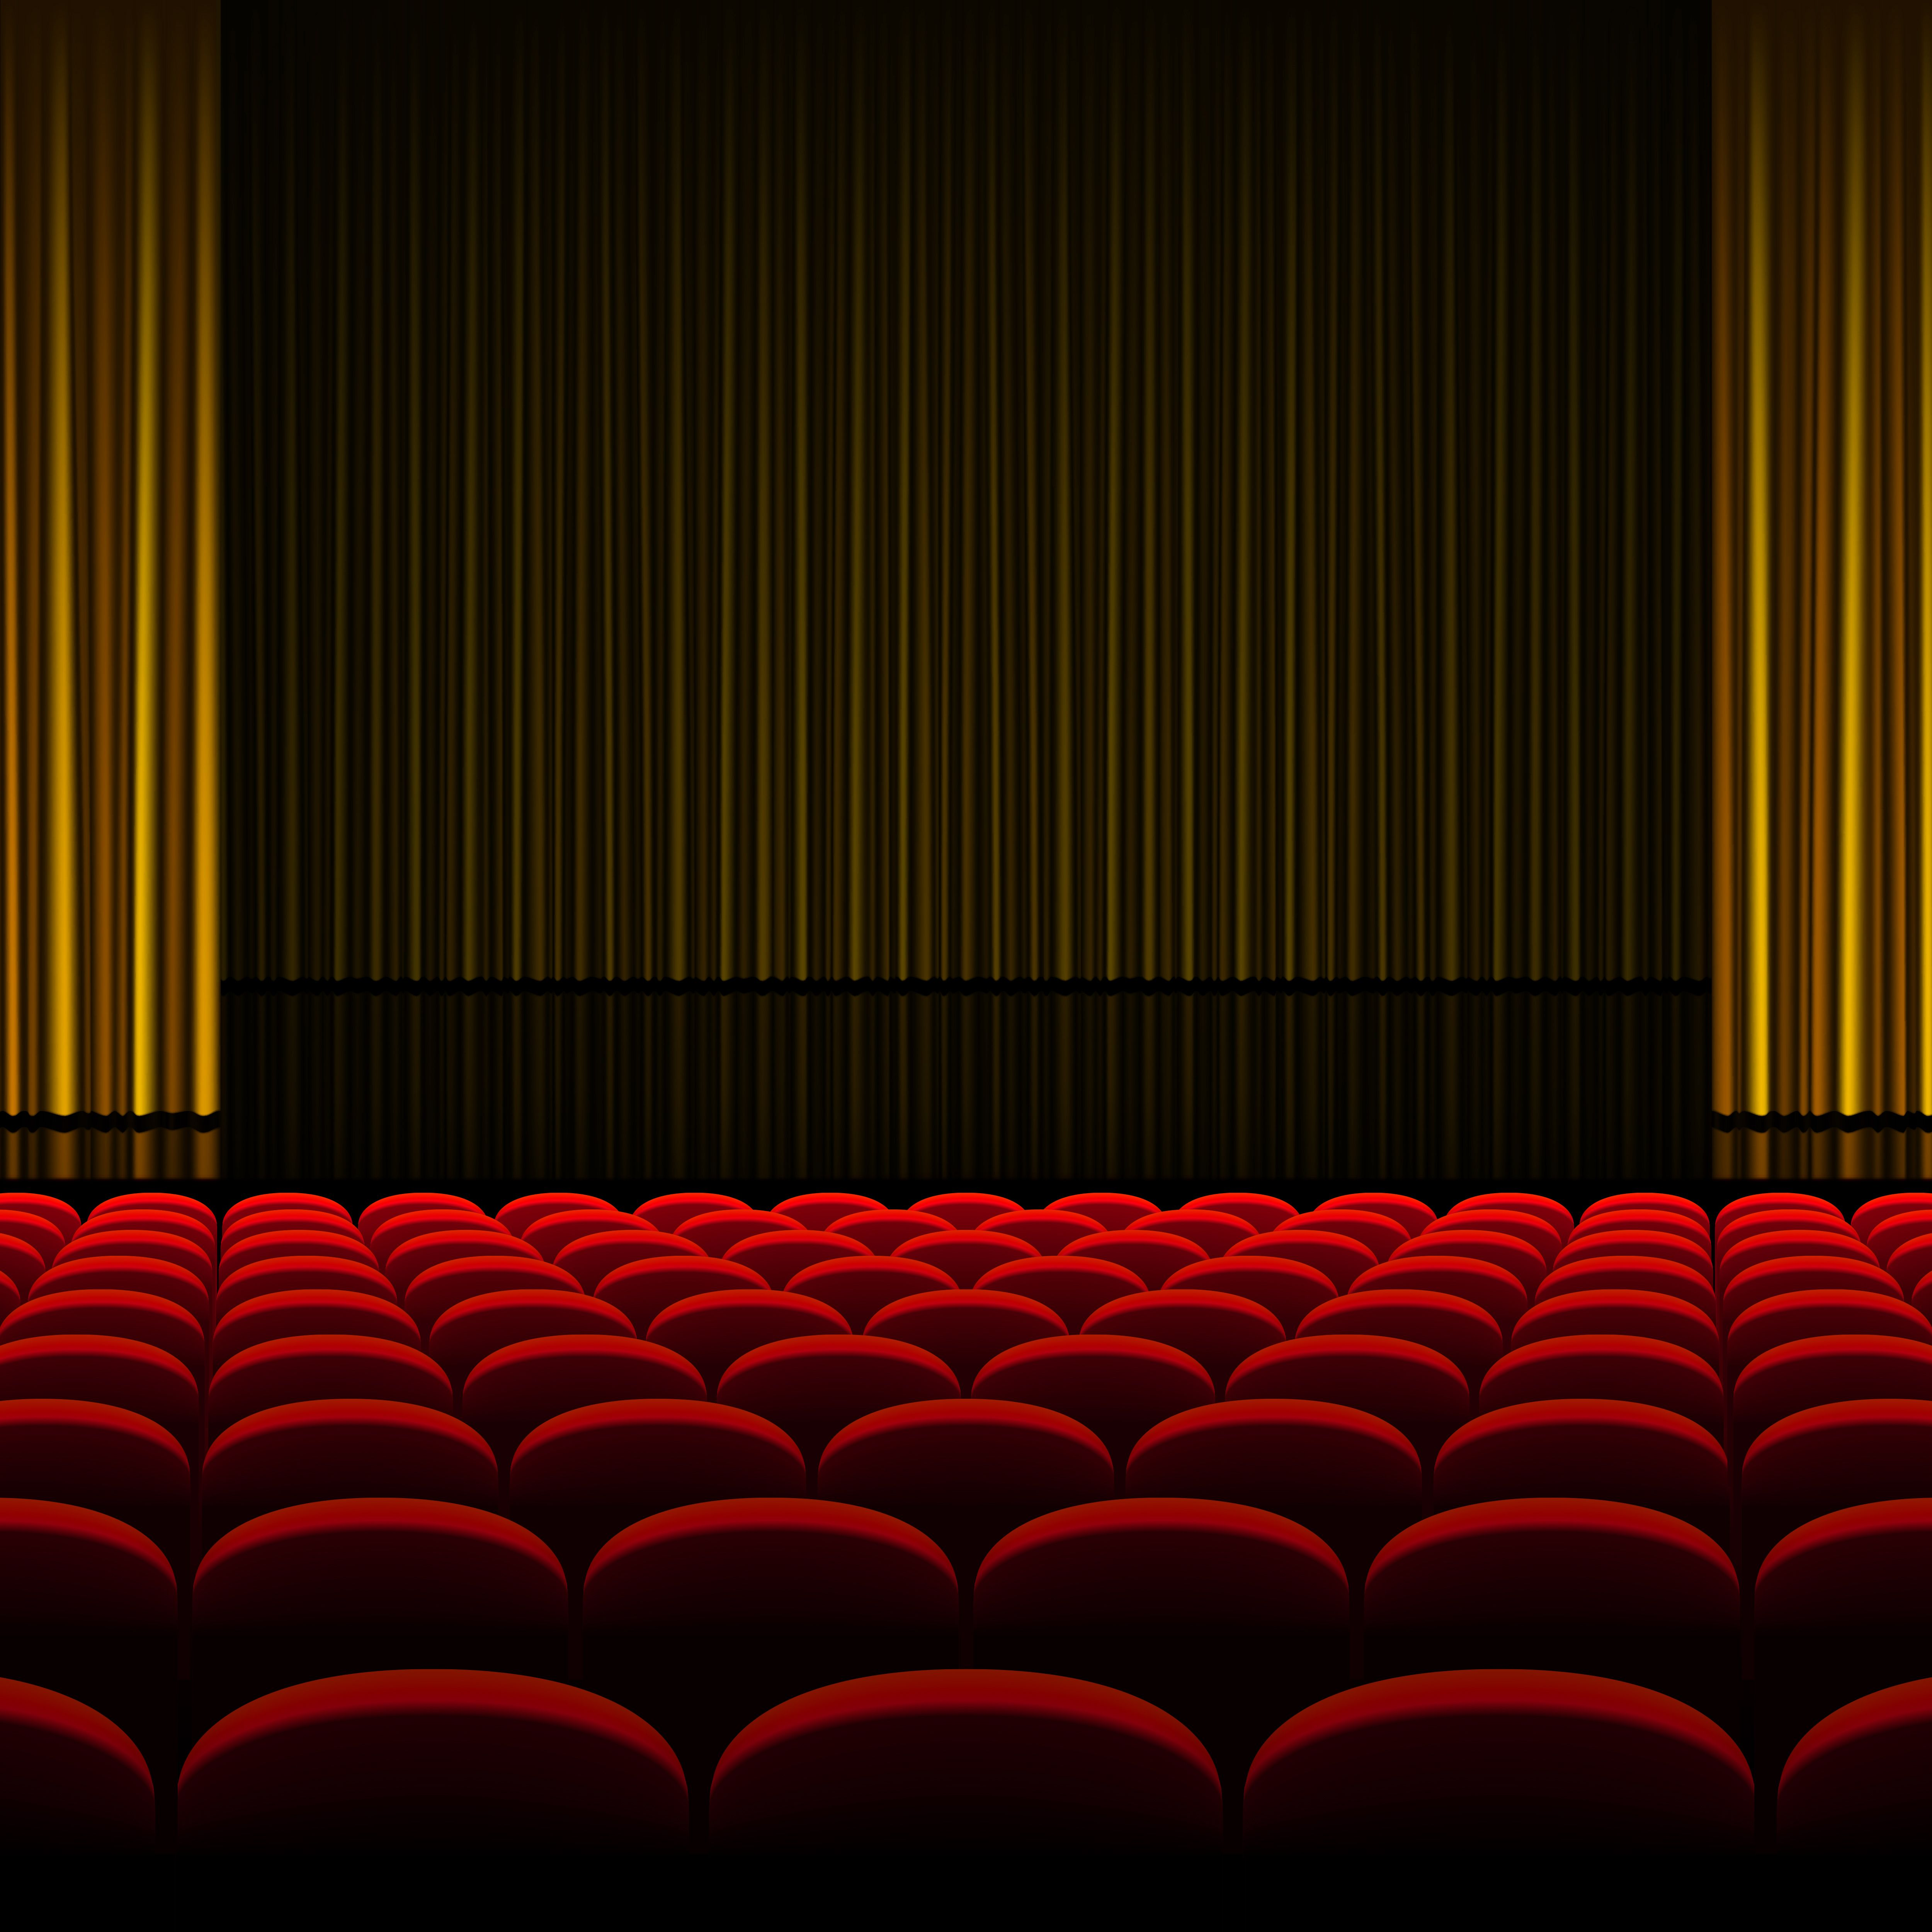 Theater Background Gallery Yopriceville High Quality Images And Transparent Png Free Clipart Home Cinema Room Background Photography Backdrop